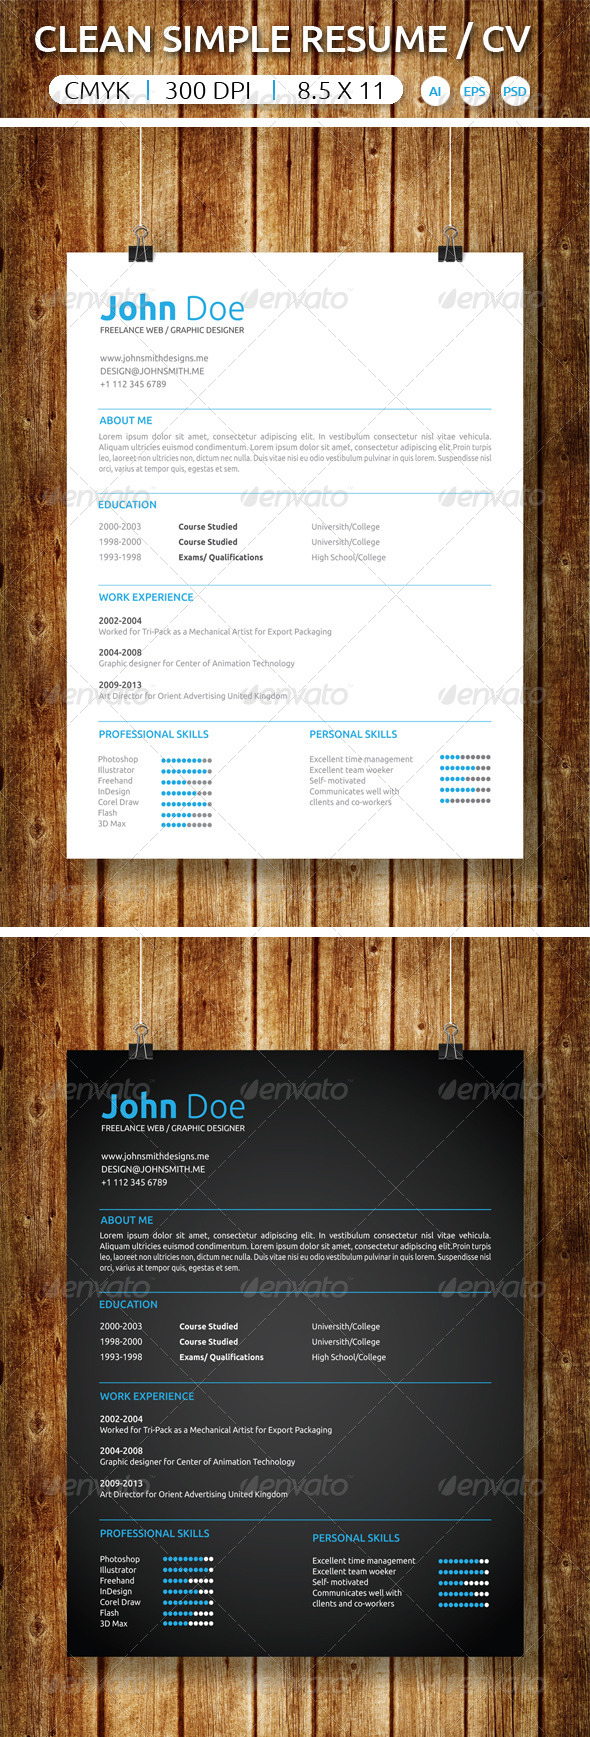 GraphicRiver Clean Simple Resume CV 7384039